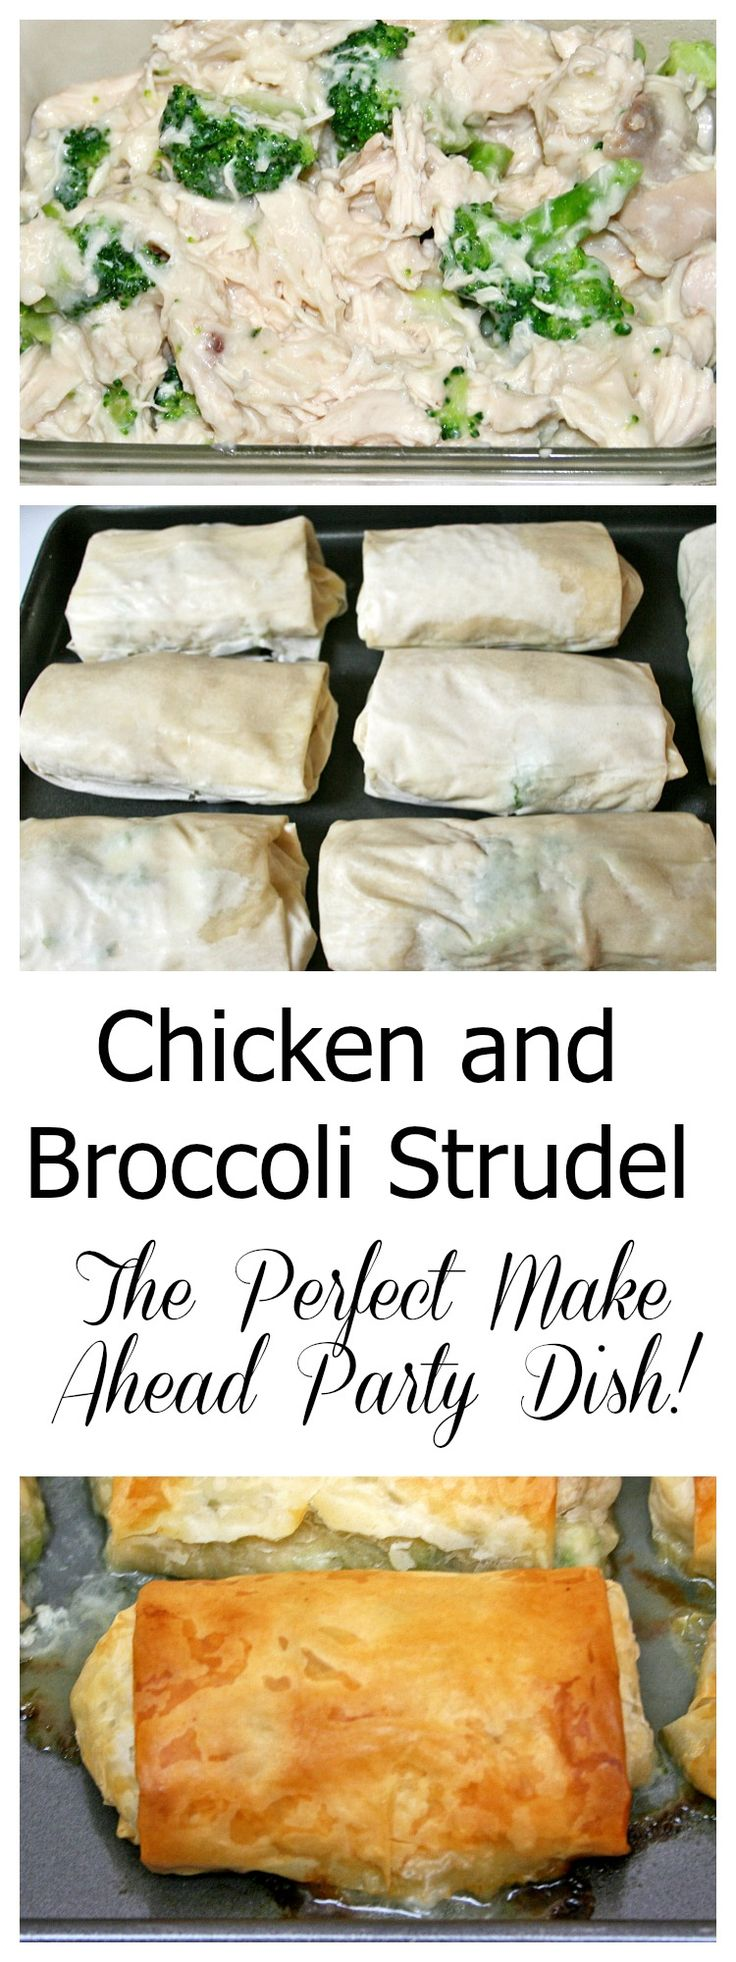 Chicken and Broccoli Strudel Tender pieces of moist chicken with broccoli in gravy wrapped in filo dough. Chicken and Broccoli Strudel is a great make ahead party dish. Roll it early in the day, bake right before serving. Takes only 20 minutes baking time!